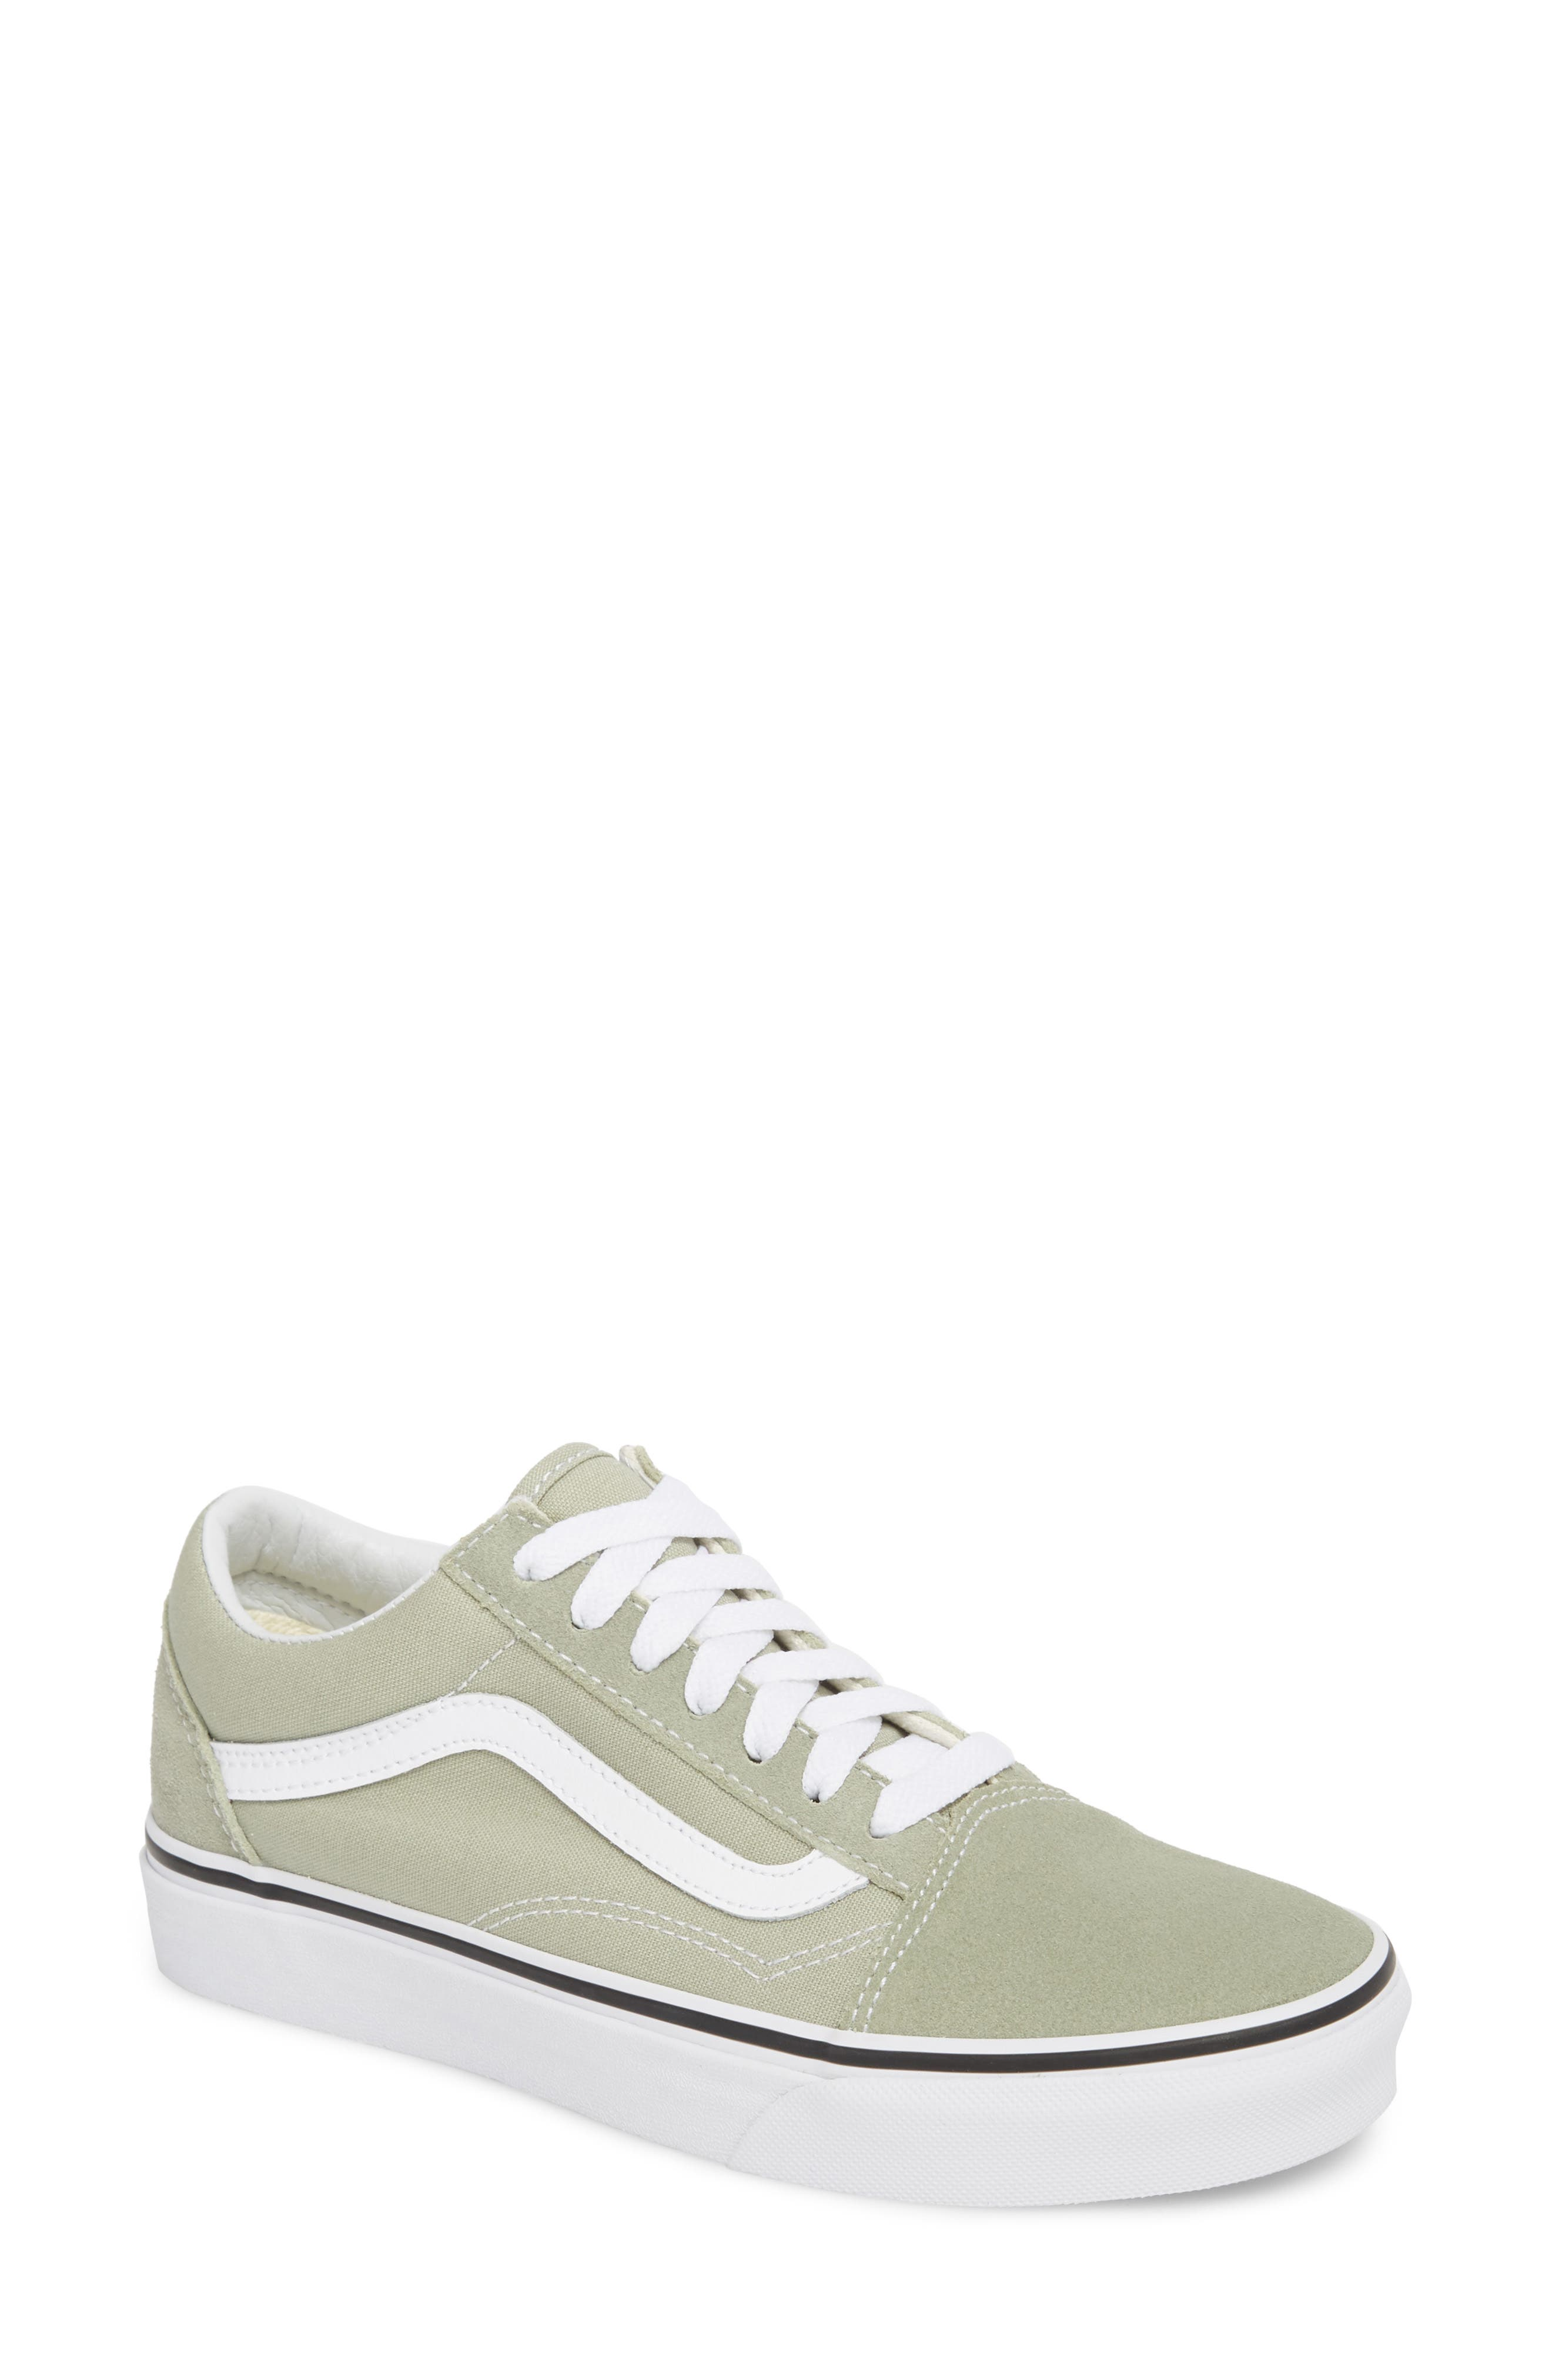 Vans ladies girls Trainers size 5.5 (uk 4.5) New! Summer shoes